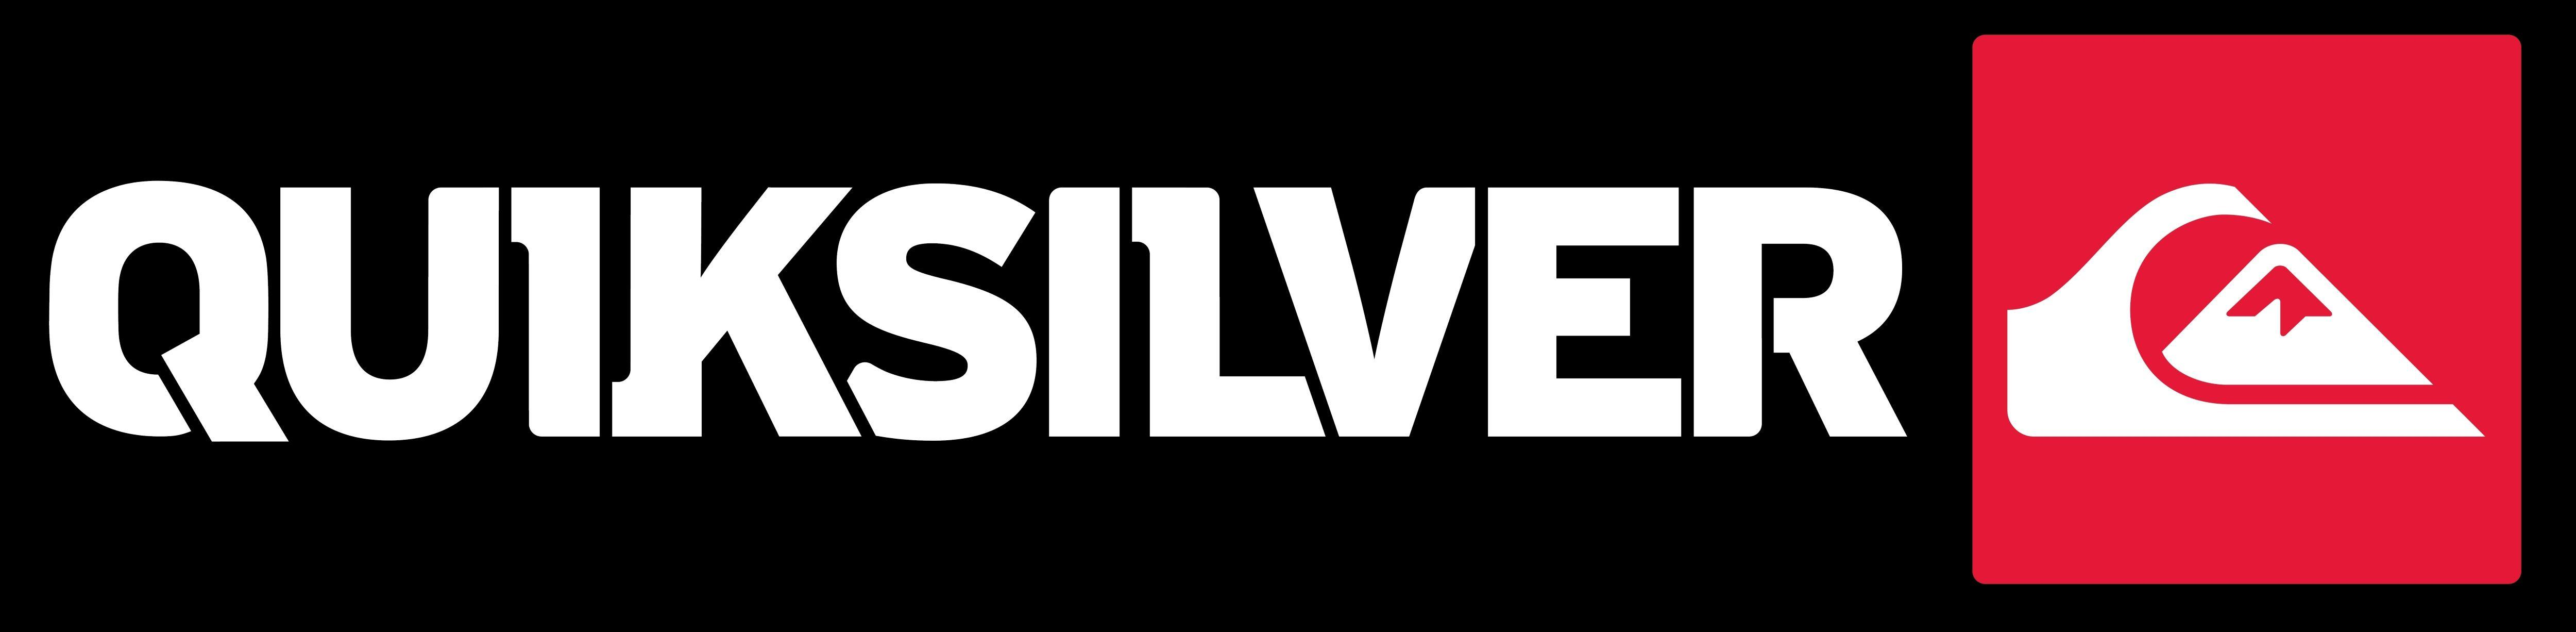 Quiksilver logo, logotype. All logos, emblems, brands pictures ...